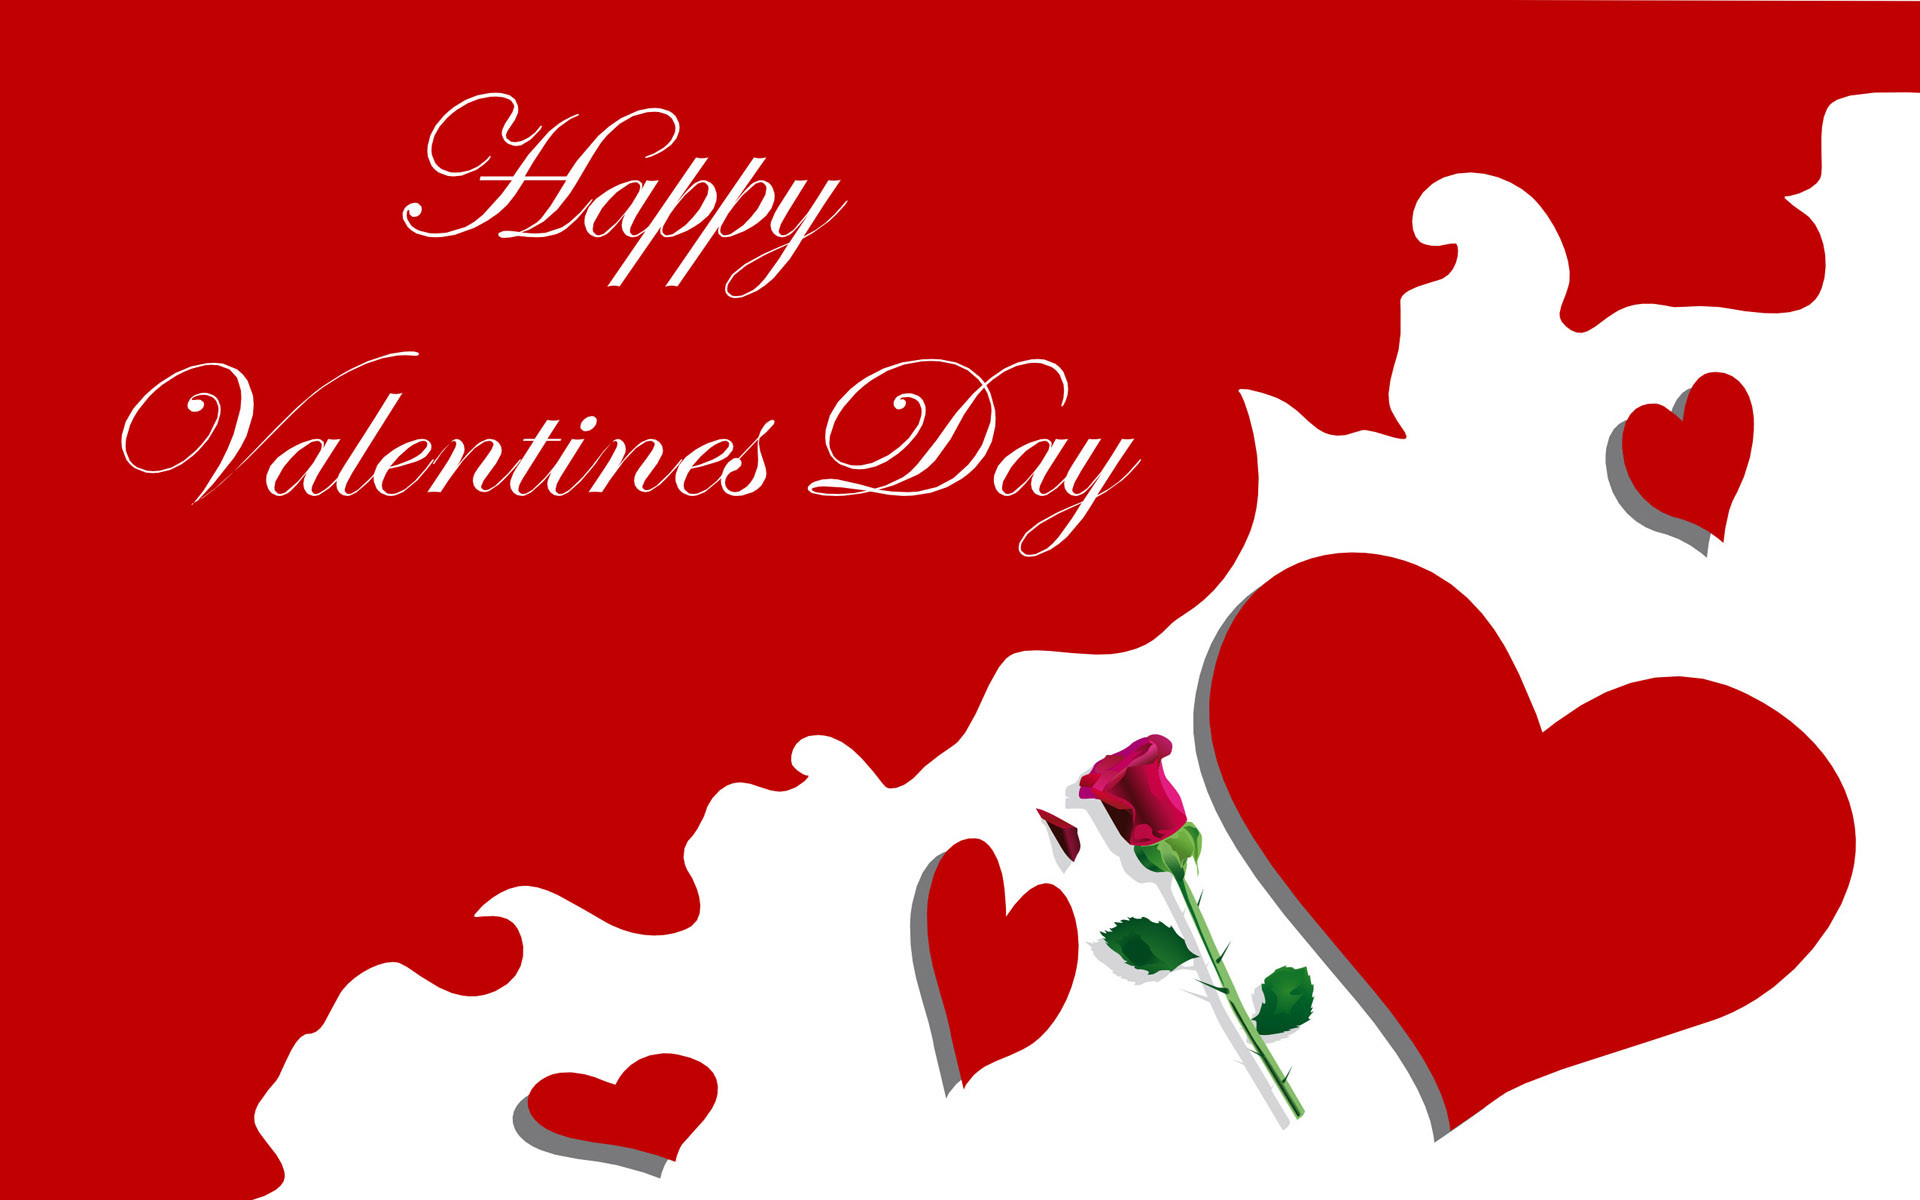 Explore 2015 Quotes, 2015 Wallpaper, and more! Happy Valentines Day Images  2015